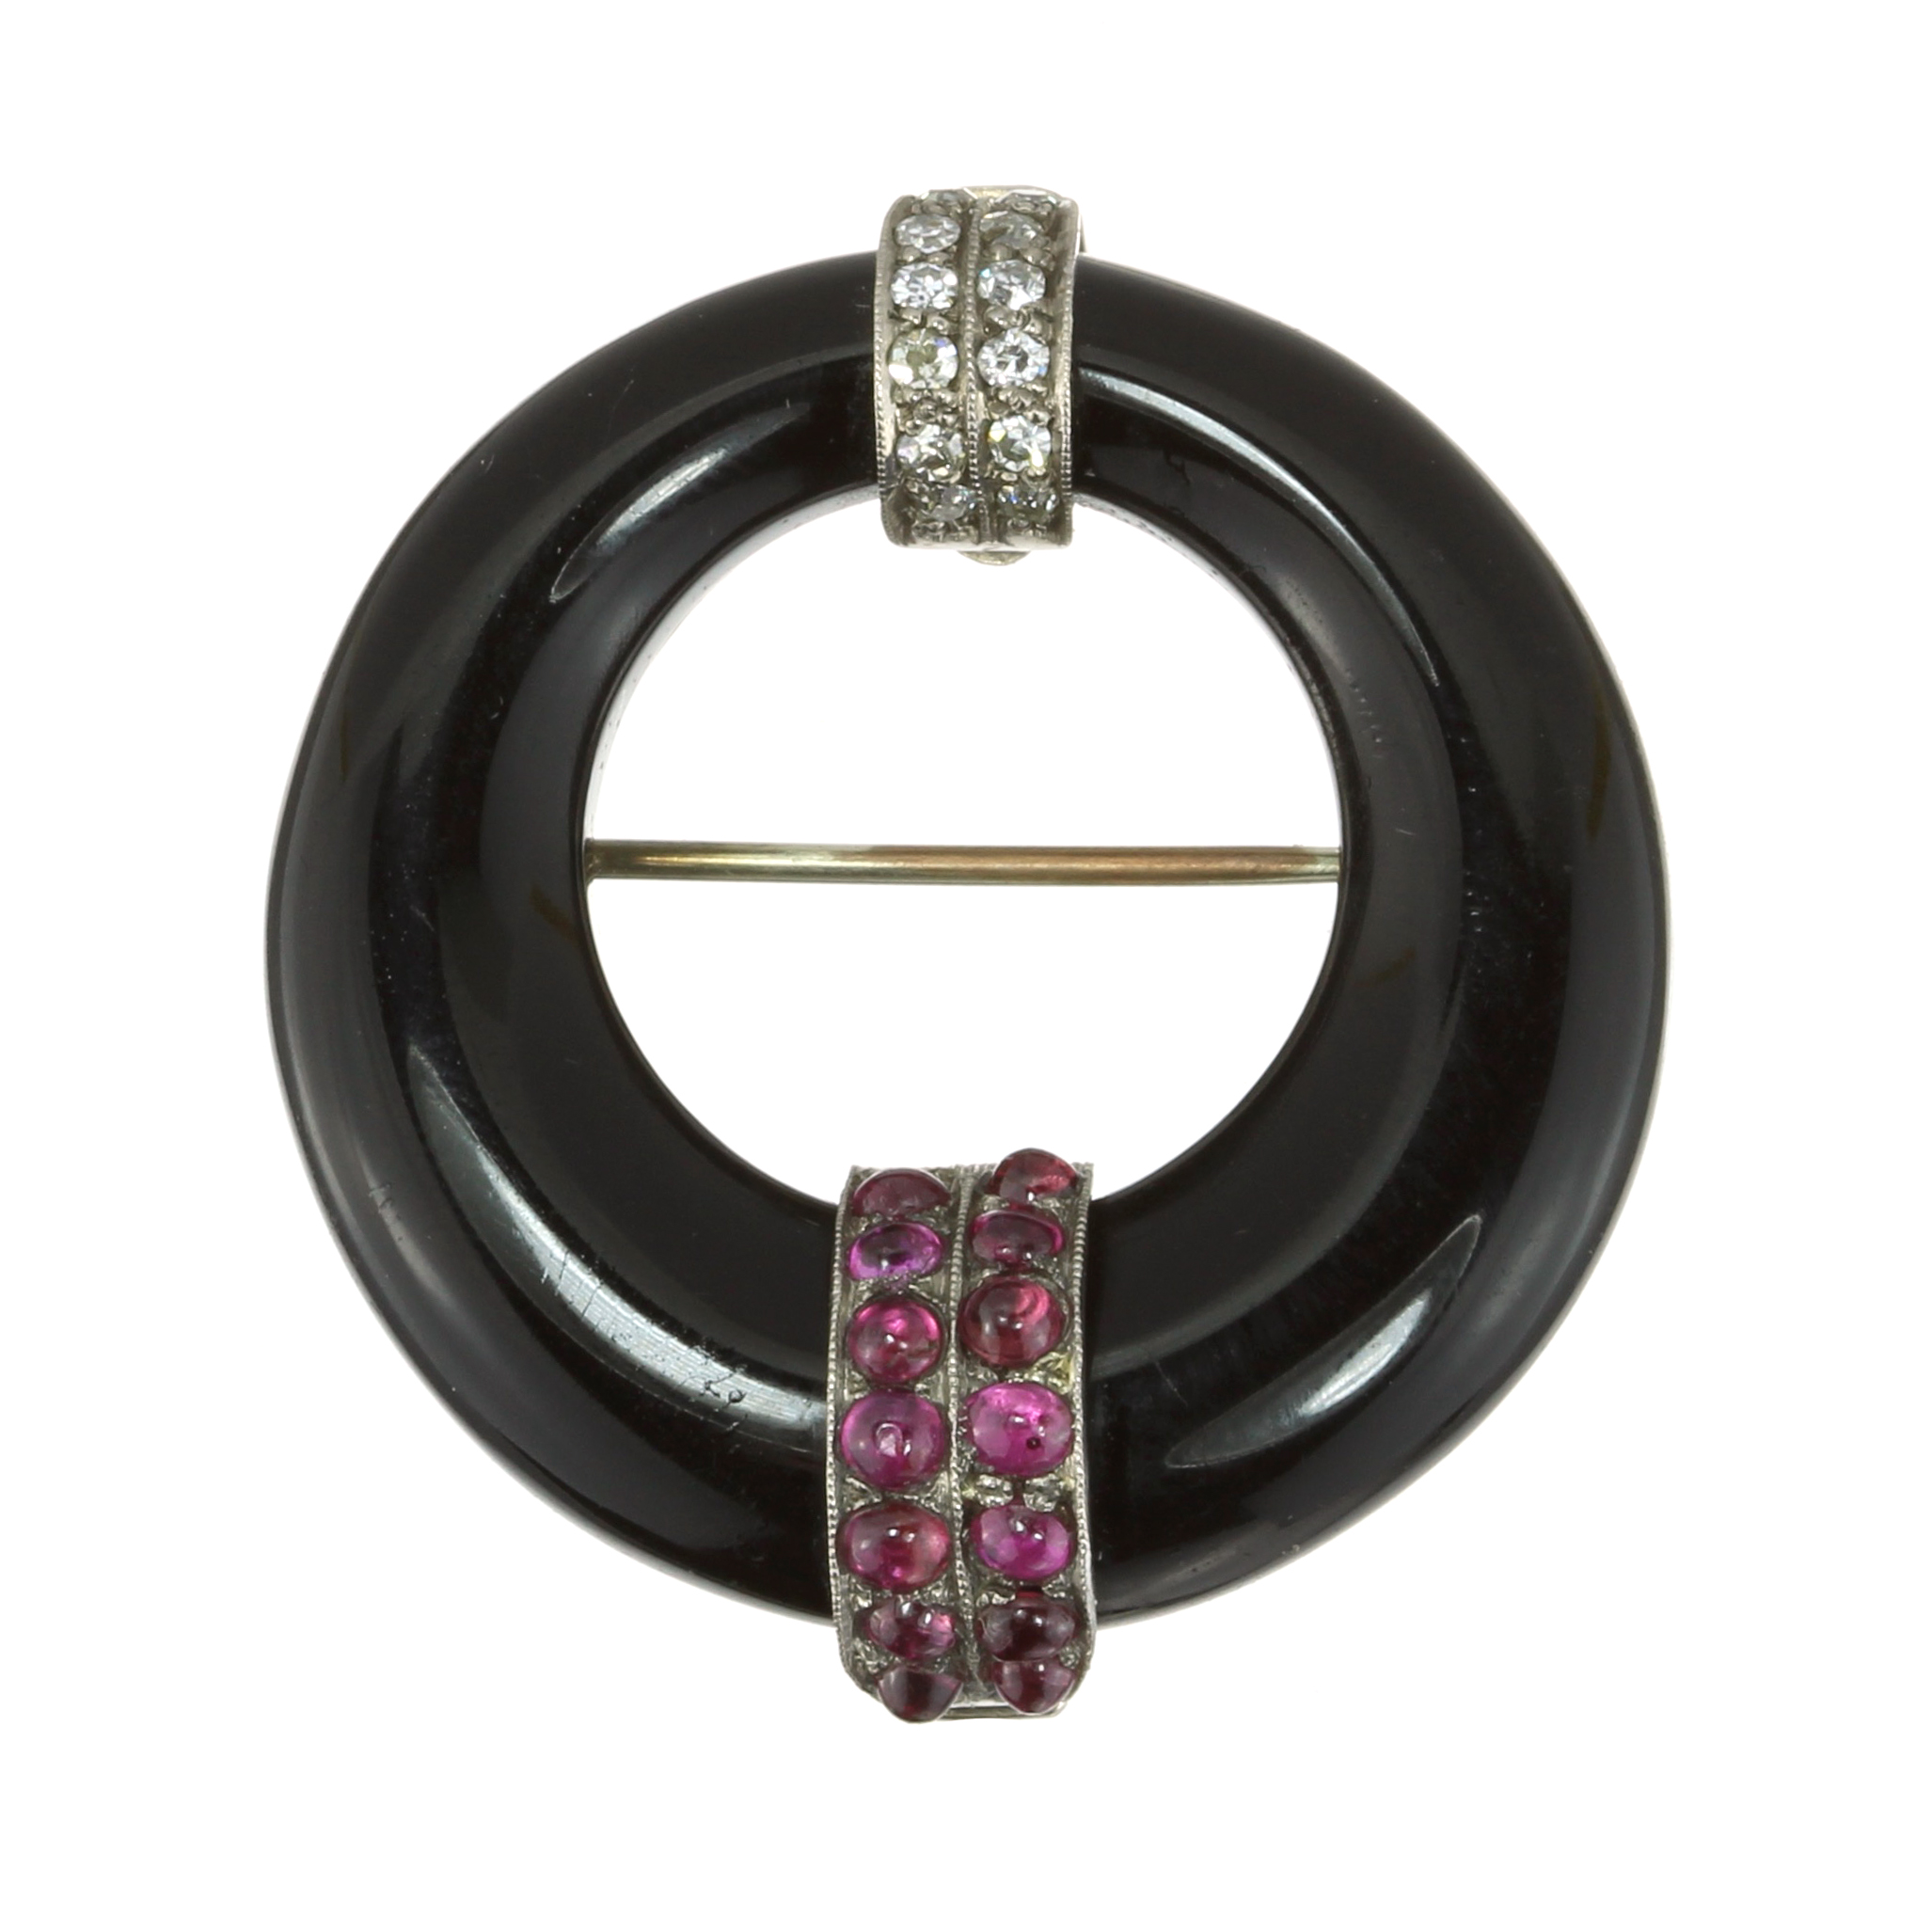 AN ANTIQUE ART DECO ONYX, RUBY AND DIAMOND BROOCH in 18ct white gold designed as a graduated black